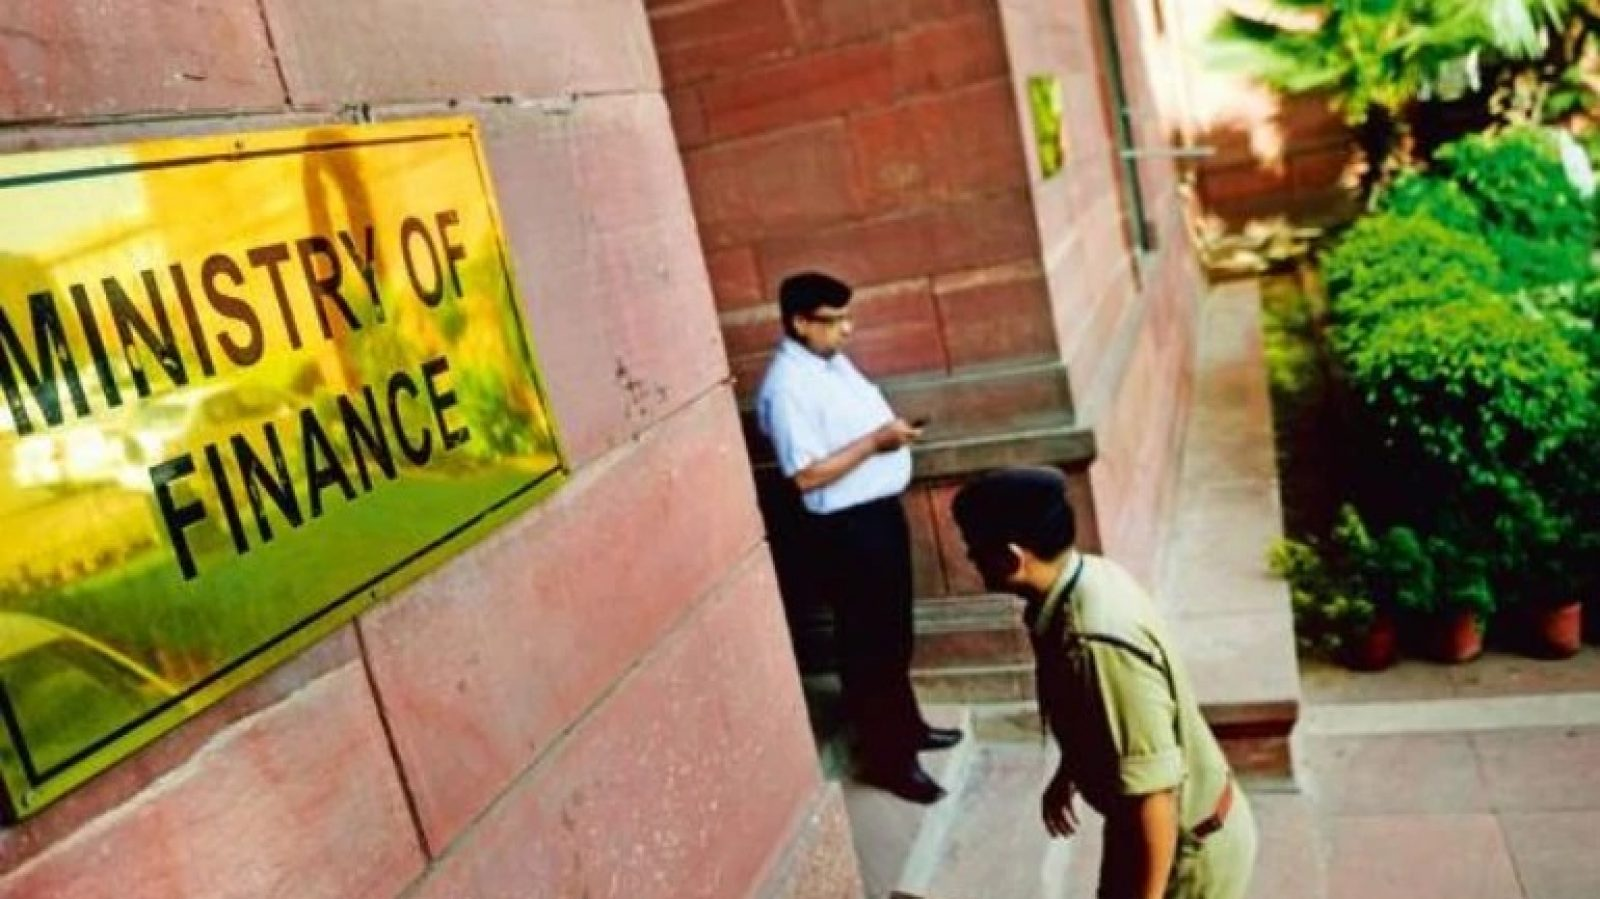 Finance Ministry: September data showing 'credible signs' of eco growth